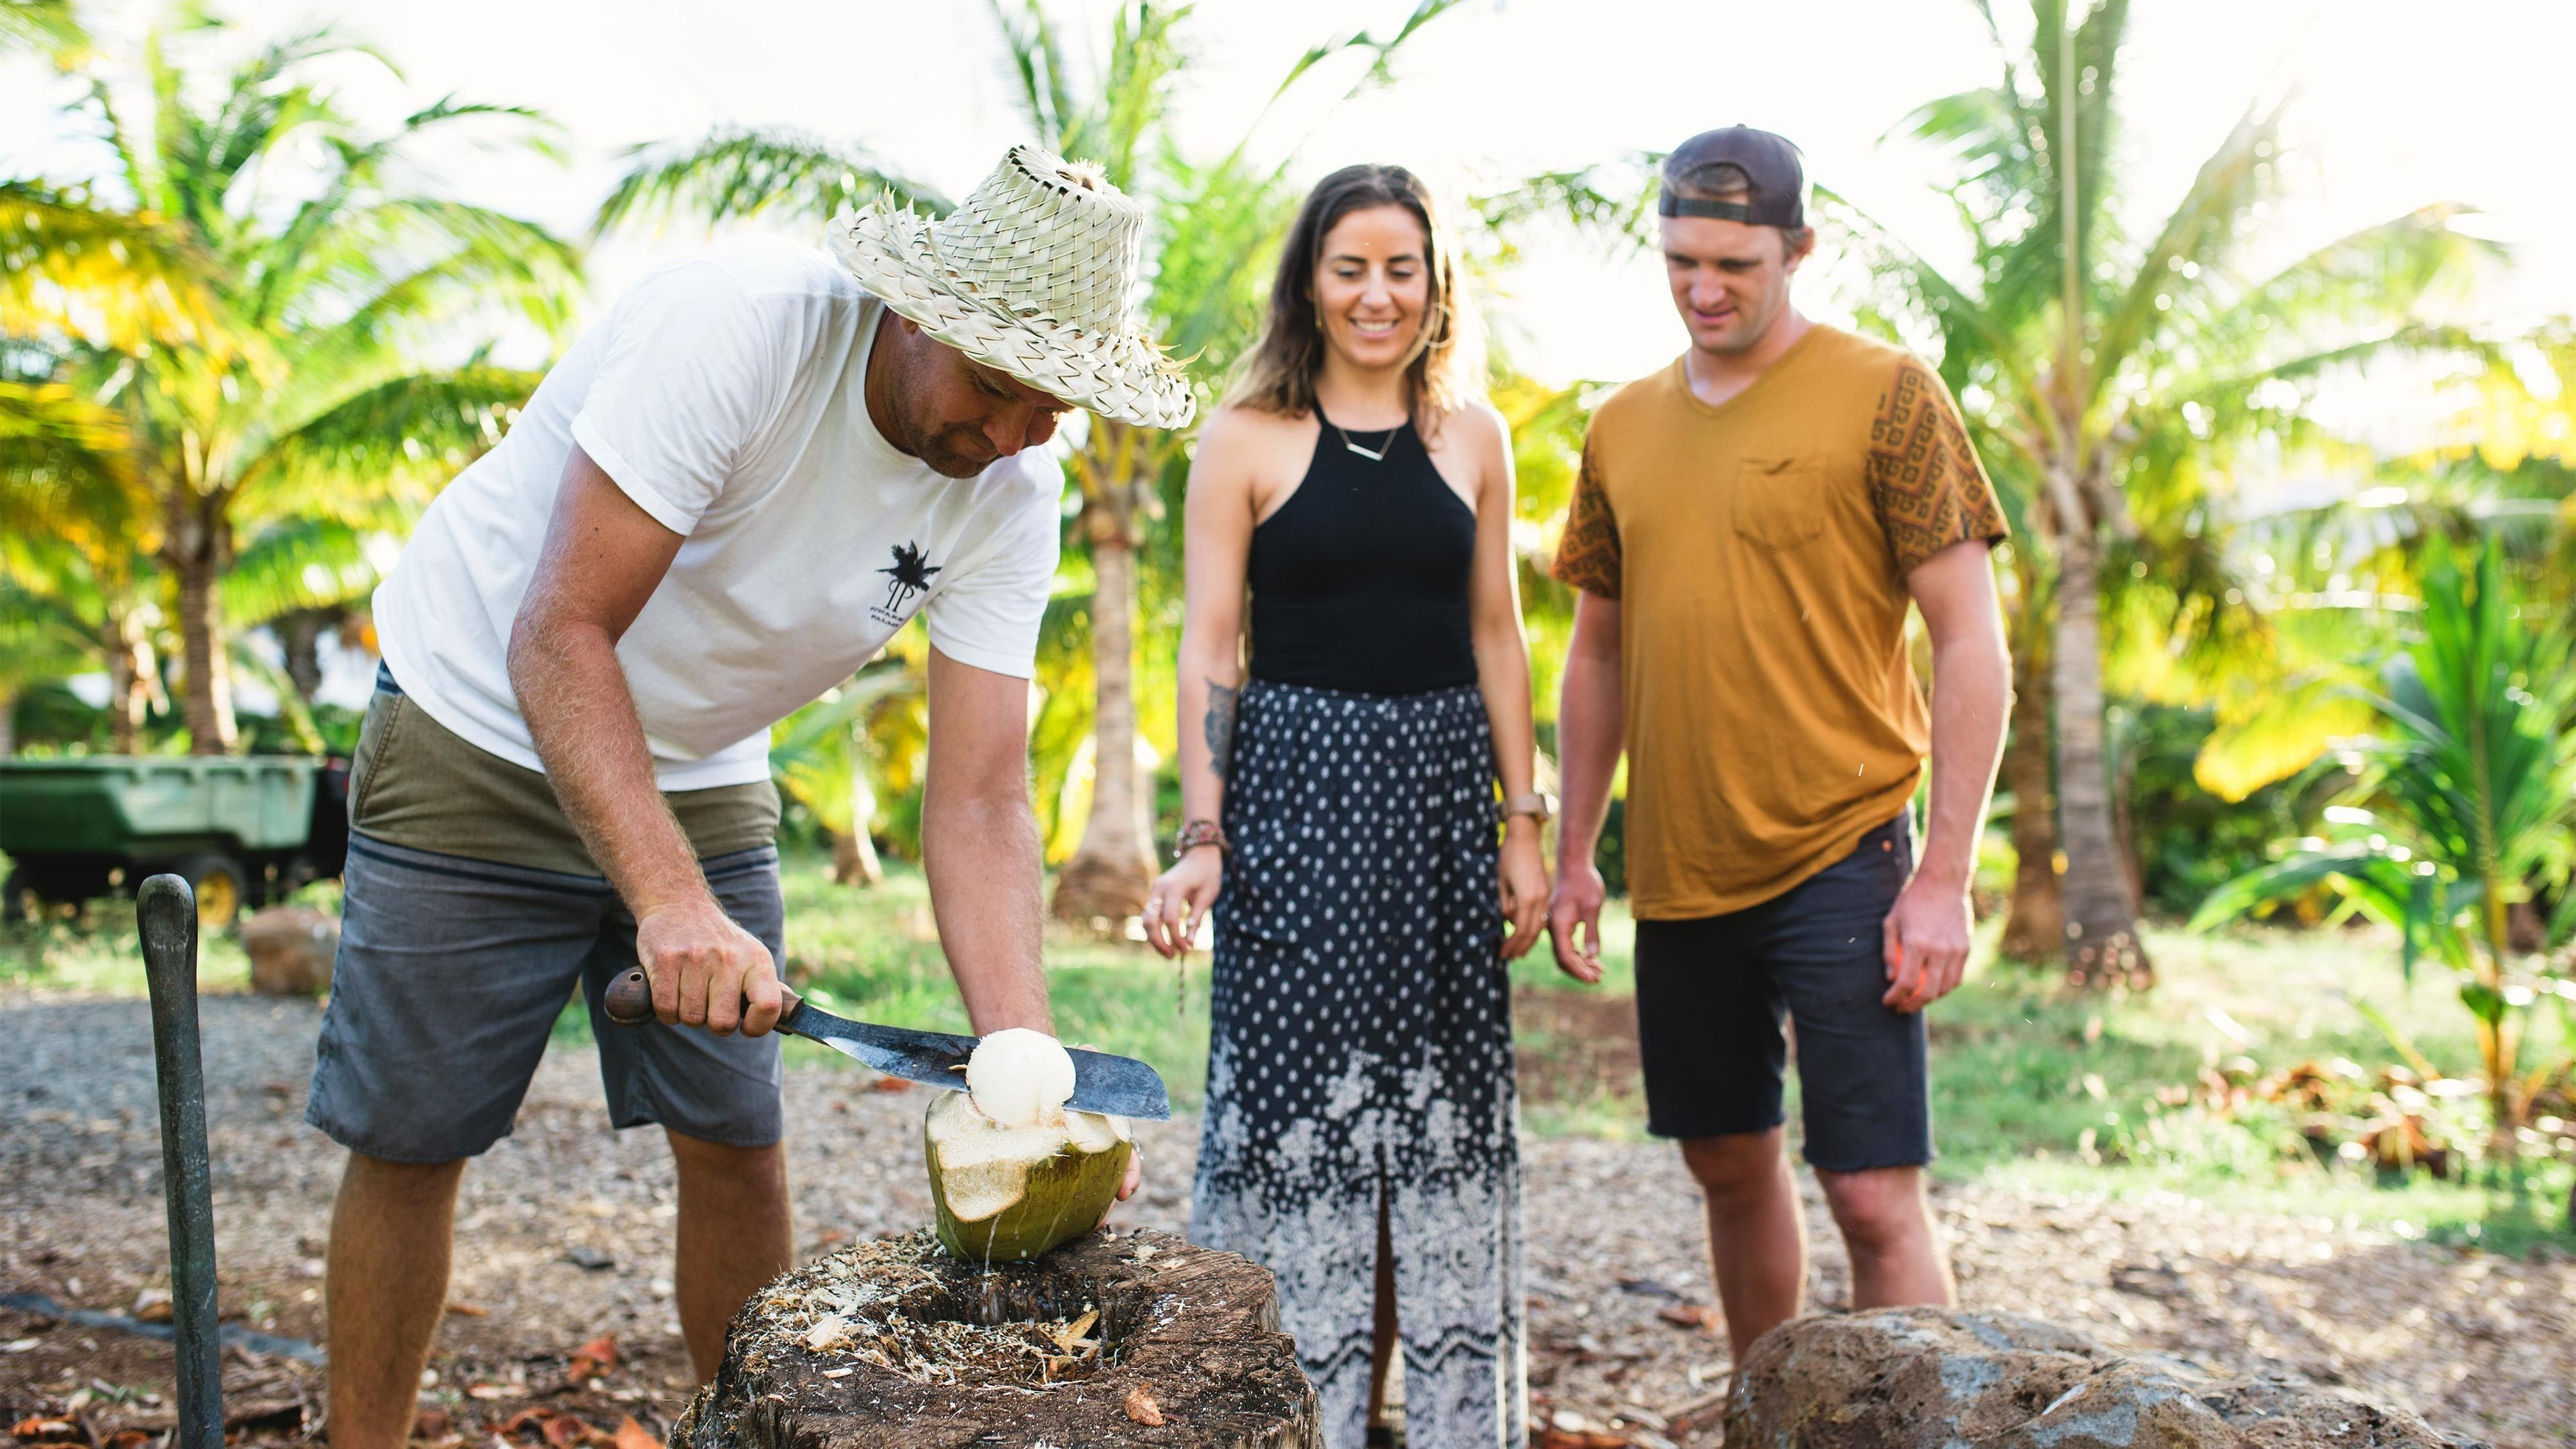 Man showing tourists how to slice open a coconut on a farm on Maui